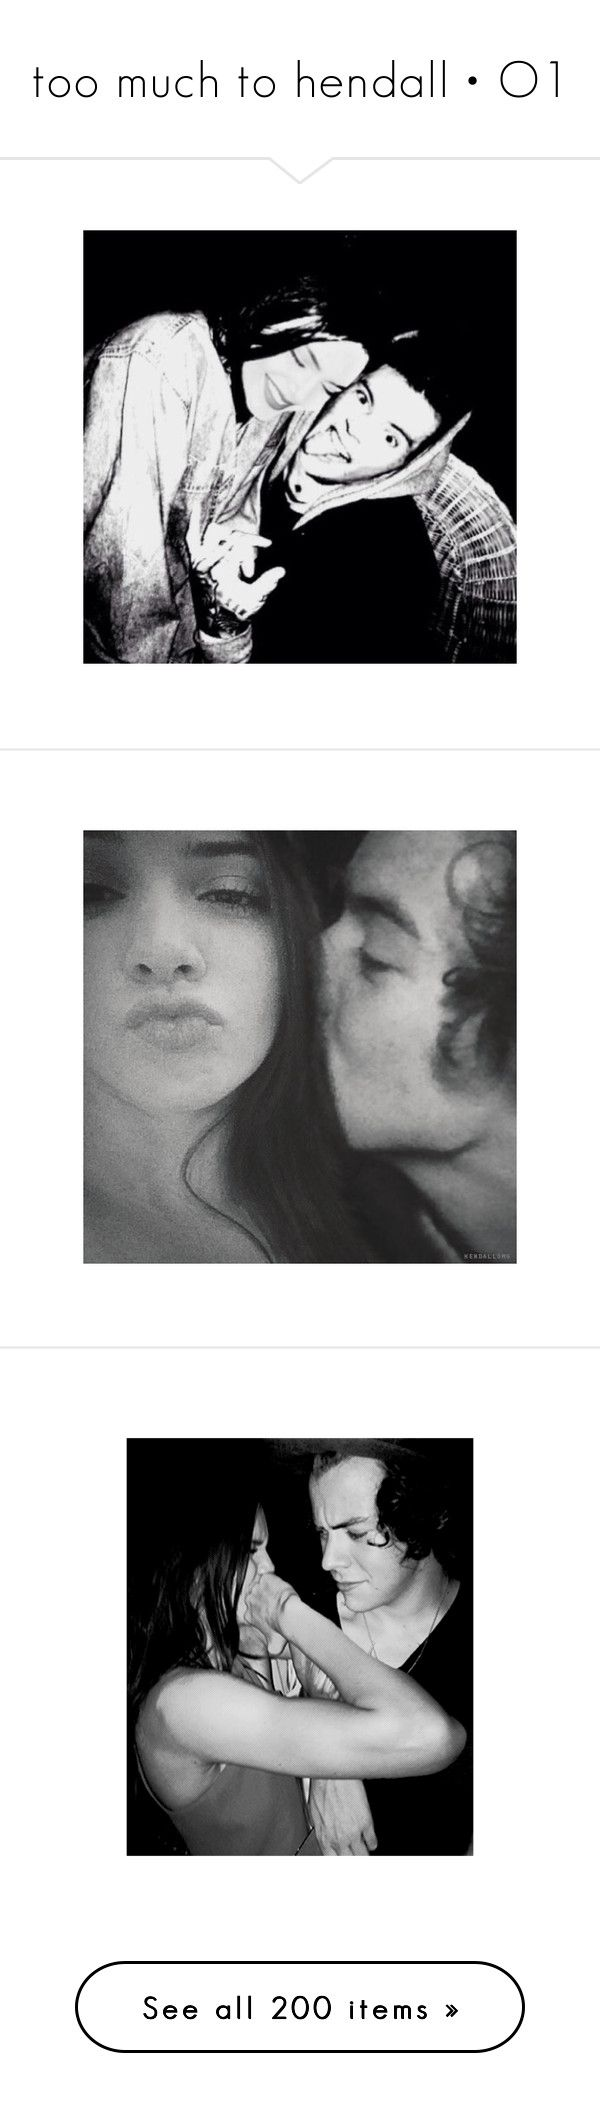 """too much to hendall • O1"" by cupcakes-are-cool ❤ liked on Polyvore featuring hendall, manip, couples, kendall jenner, jendall, harry, harry and kendall, harry styles, instagram and pictures"